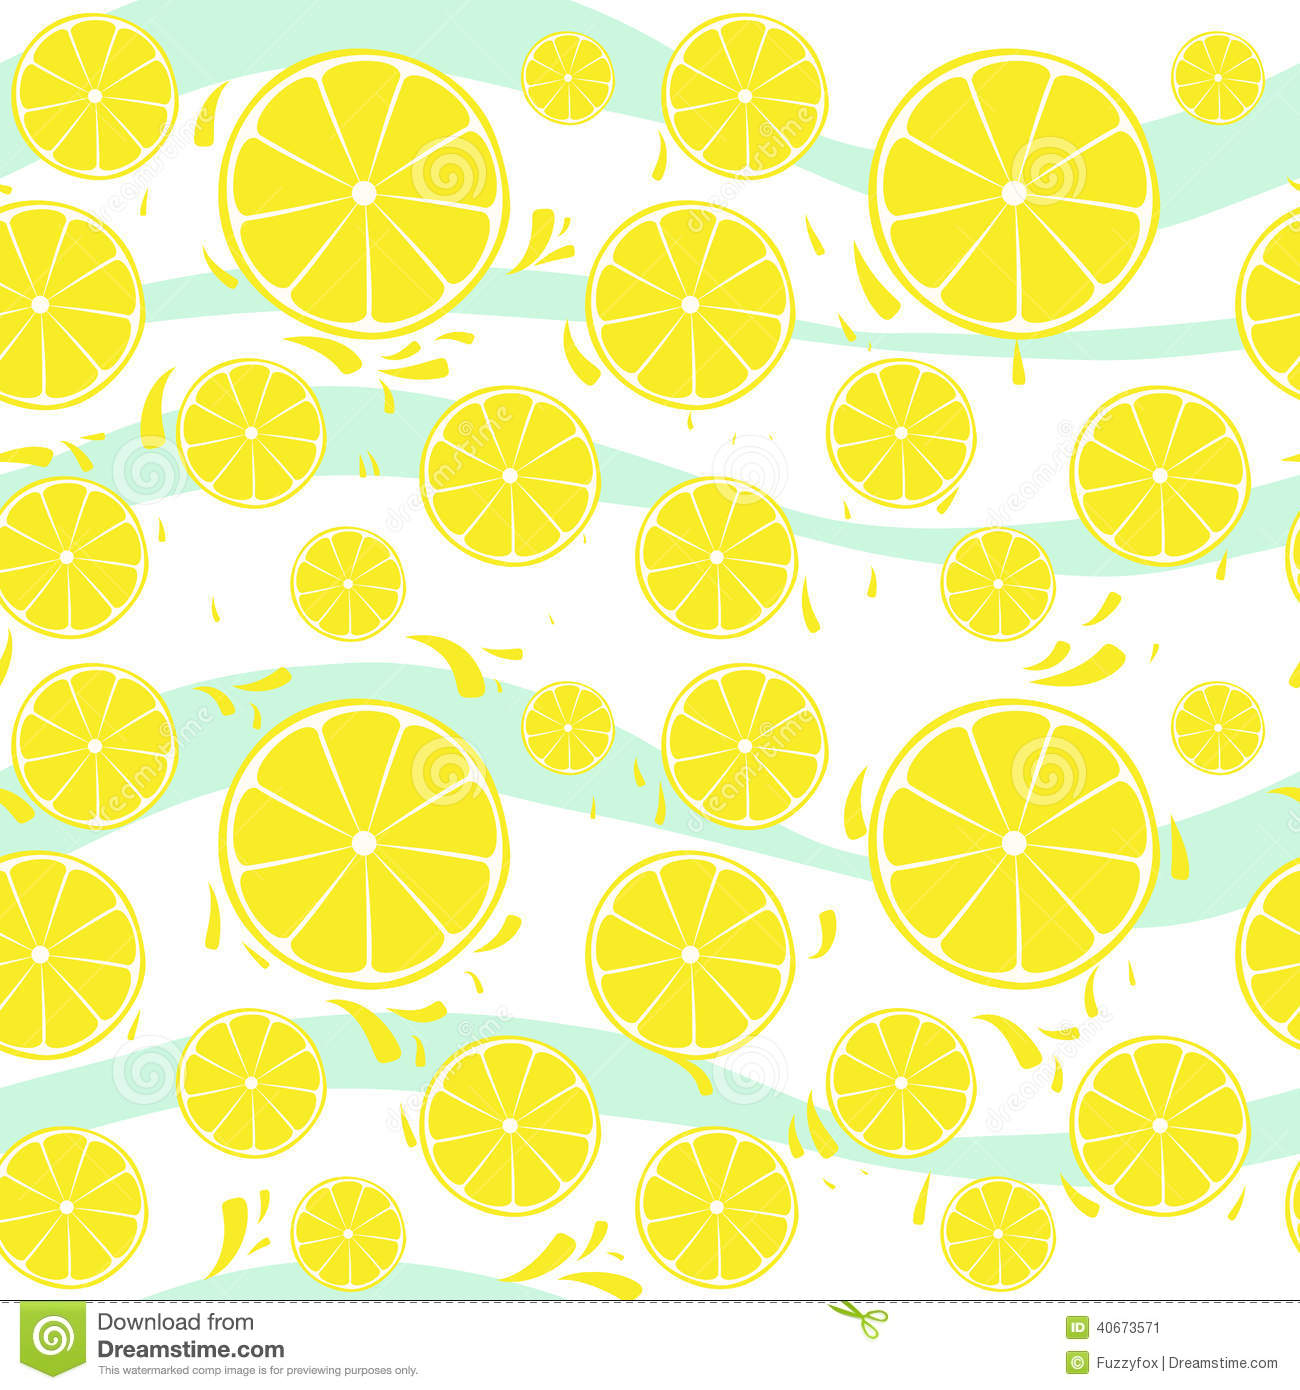 Cute Seamless Pattern With Yellow Lemon Slices Royalty ...